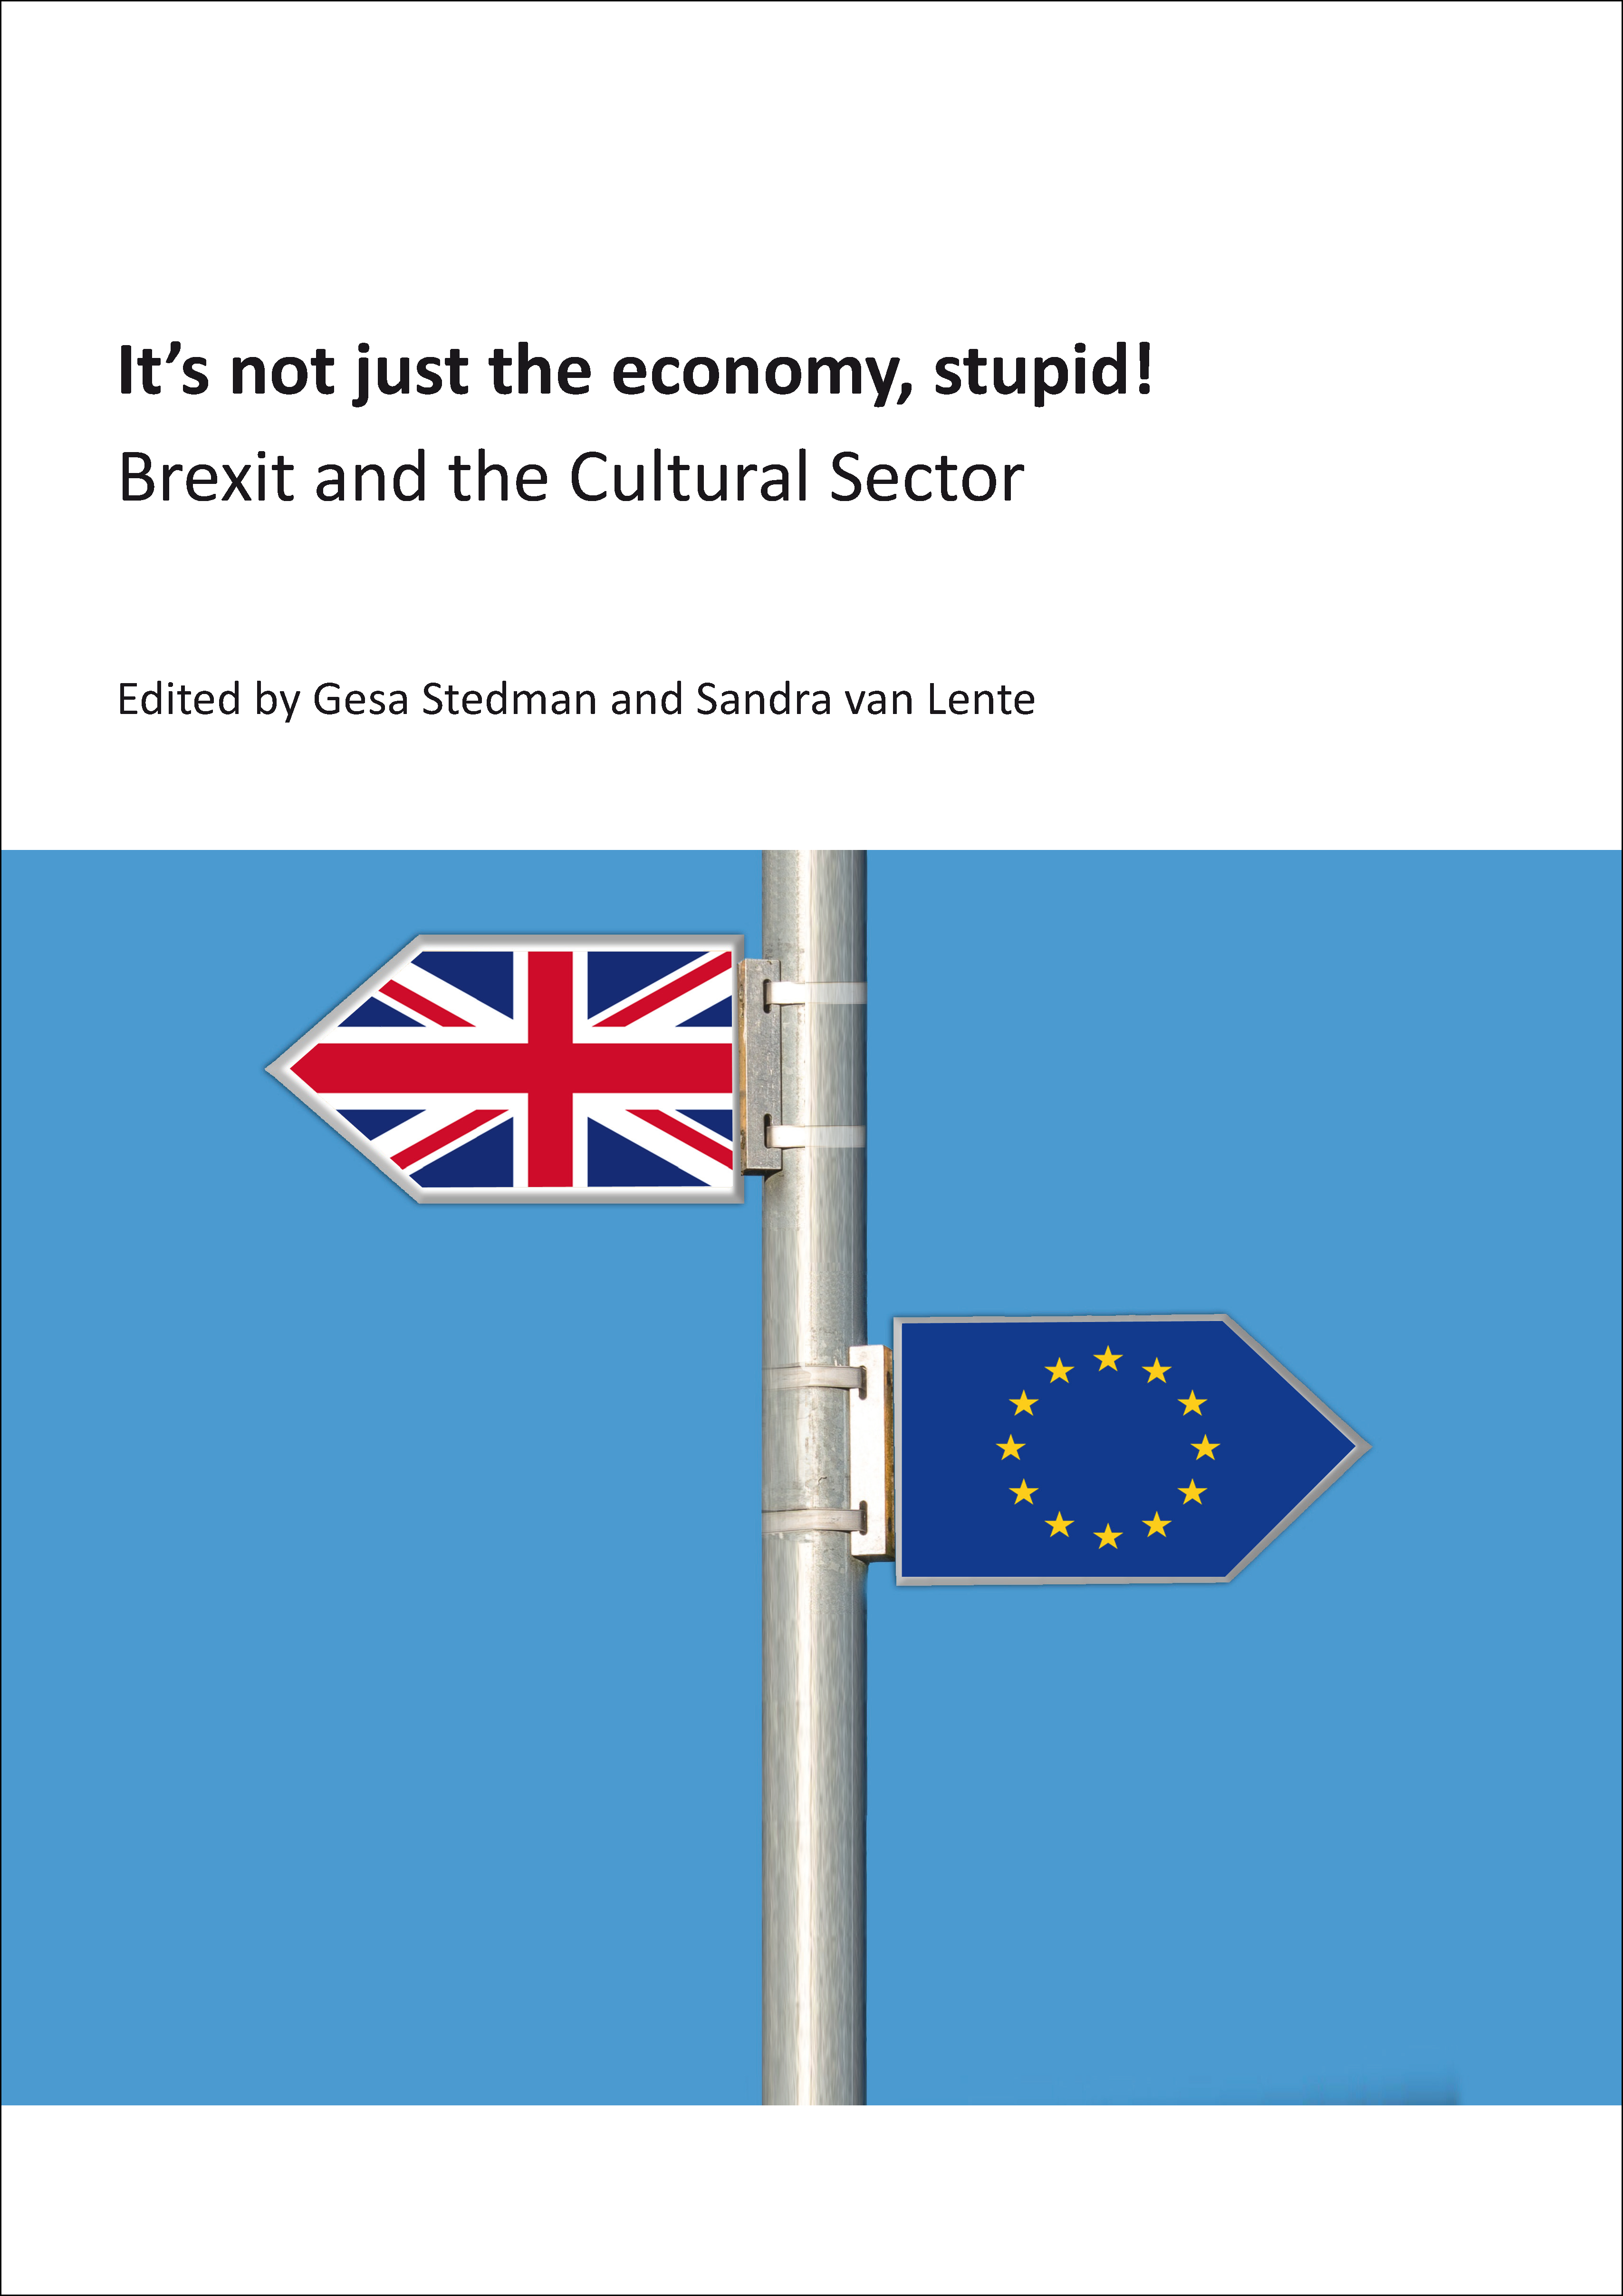 Brexit and Cultural Sector_cover with border.png